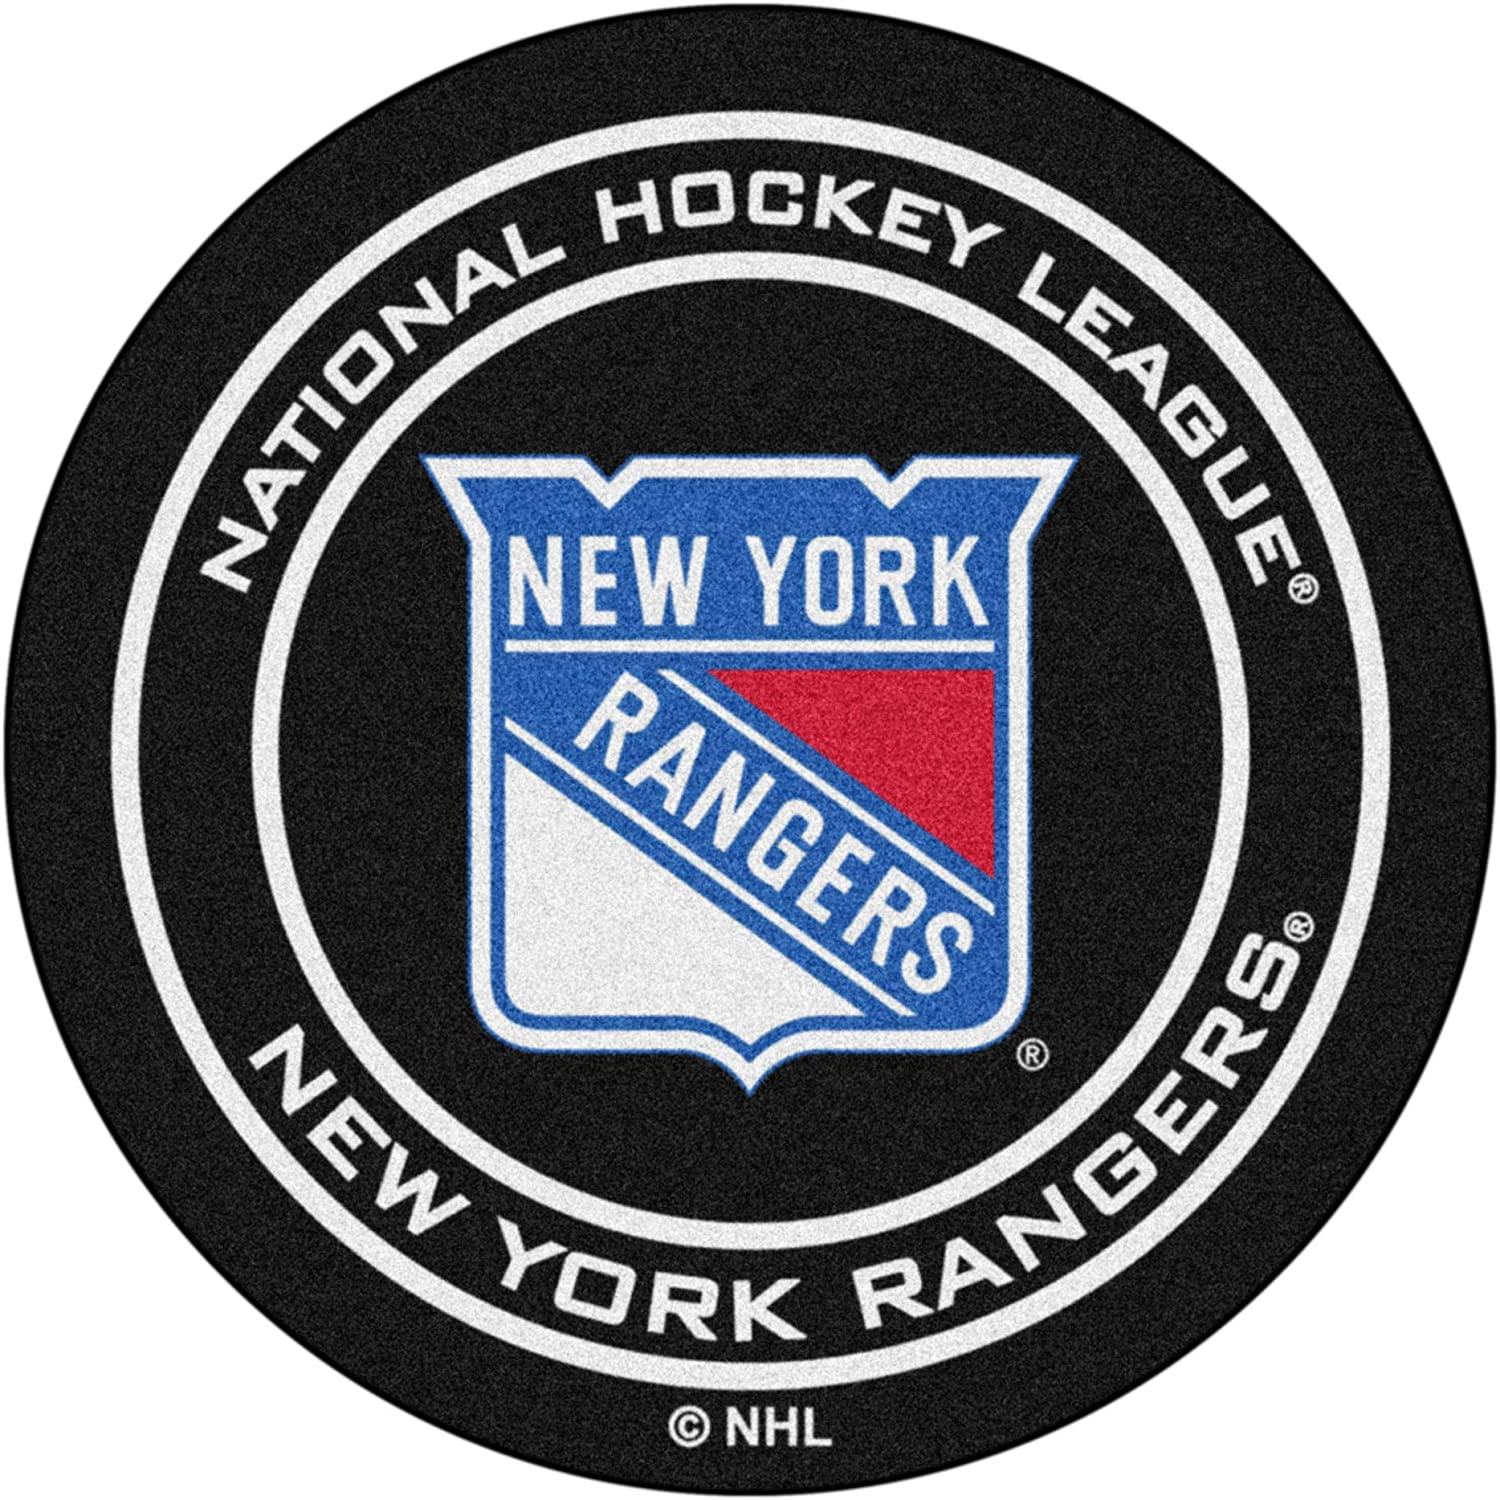 FANMATS Surprise price - 10472 NHL New York Face Rangers Rug Hockey Puck Nylon New mail order